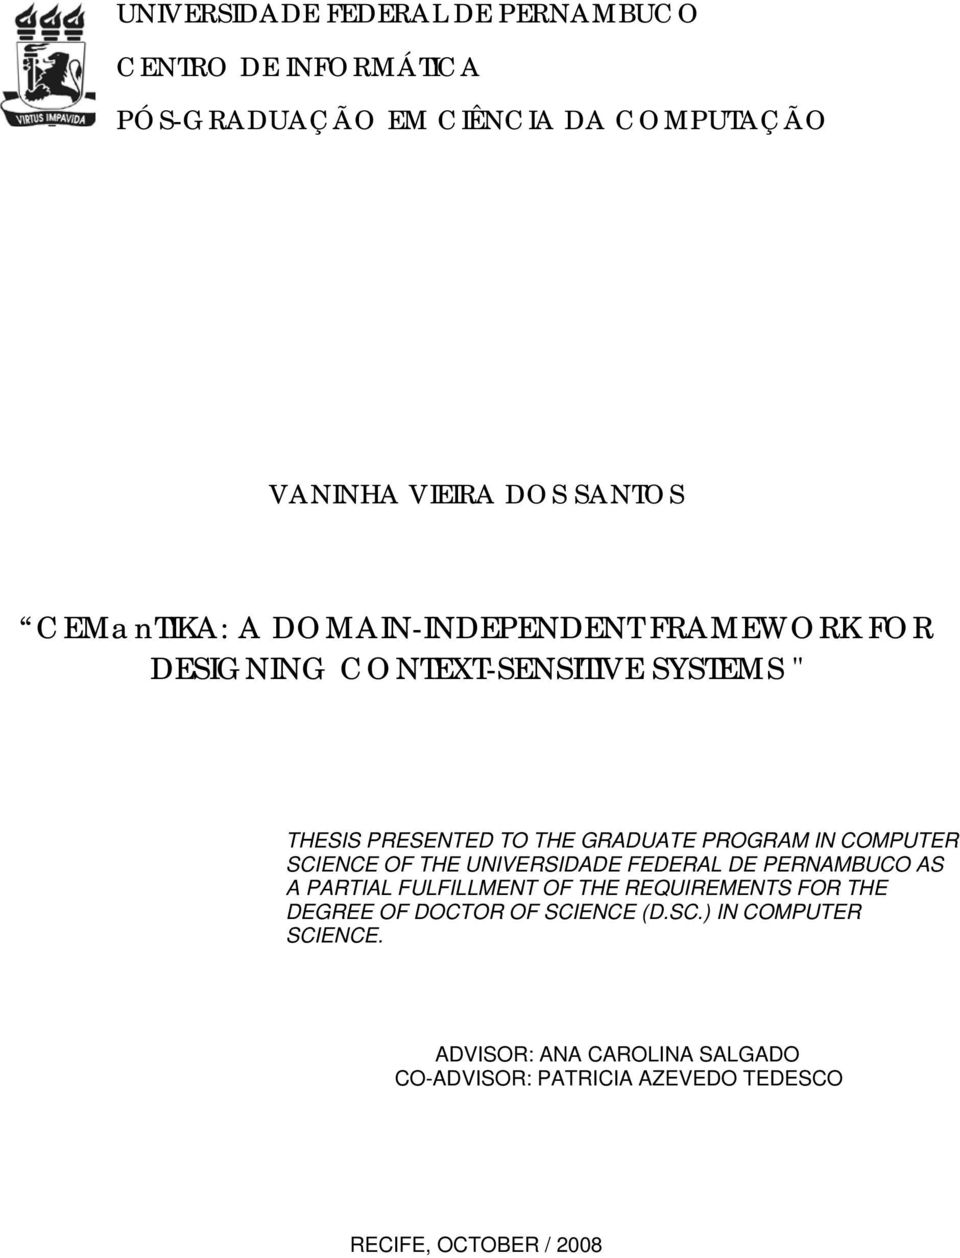 IN COMPUTER SCIENCE OF THE UNIVERSIDADE FEDERAL DE PERNAMBUCO AS A PARTIAL FULFILLMENT OF THE REQUIREMENTS FOR THE DEGREE OF